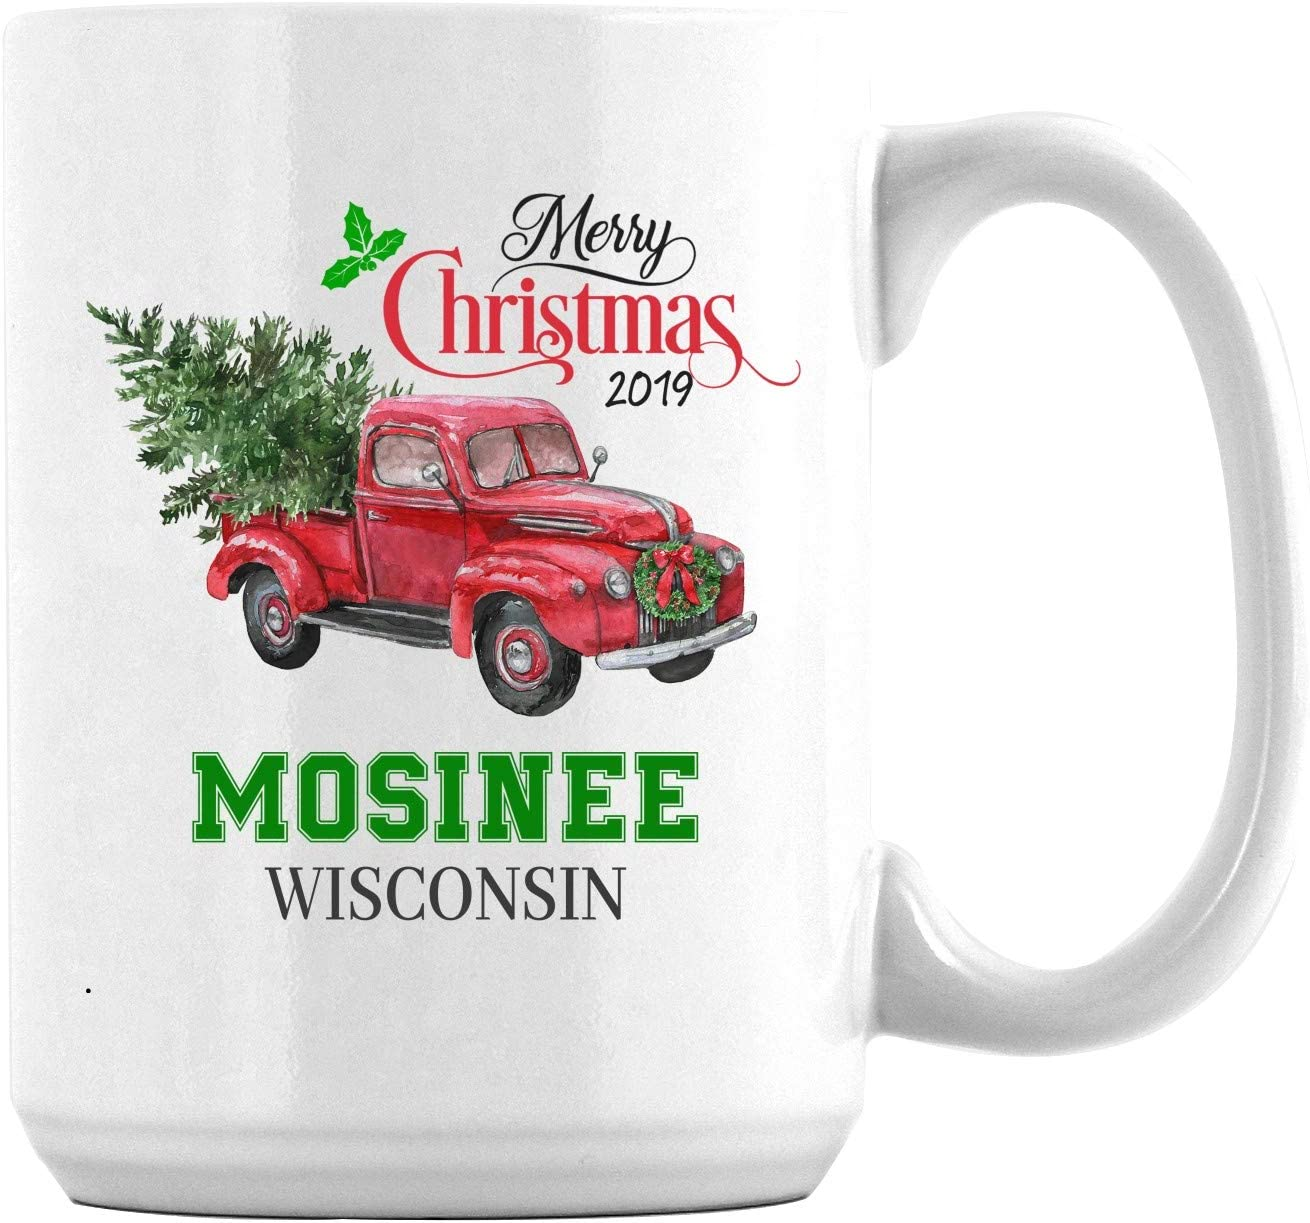 Mosinee Christmas Festival 2020 Amazon.com: Merry Christmas White Coffee Mug With Mosinee